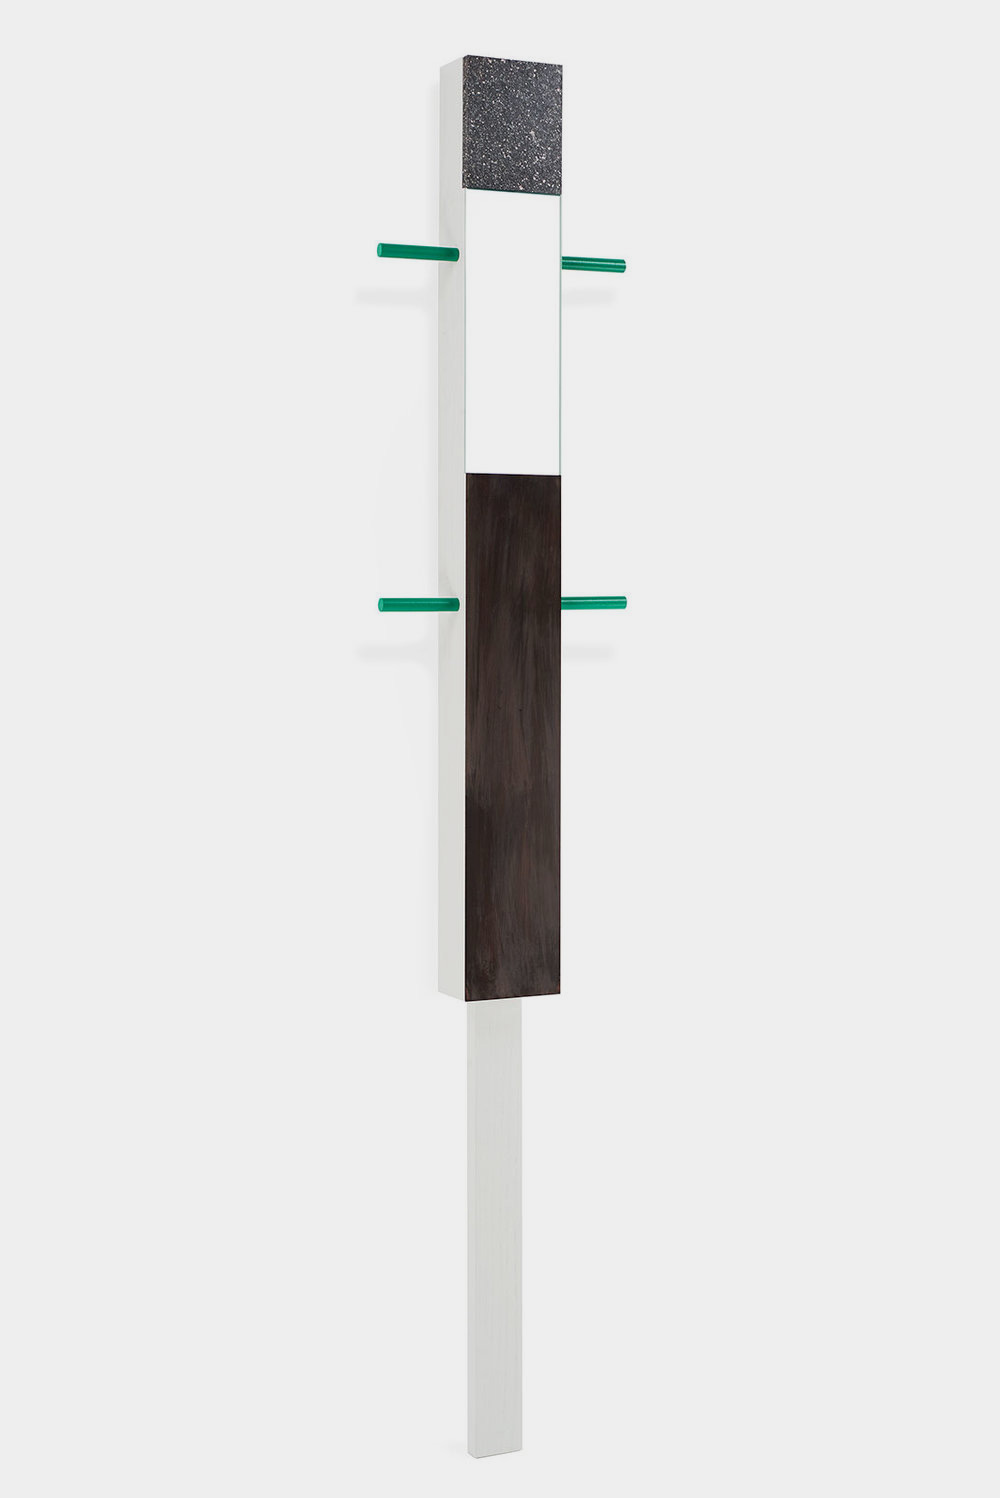 Periscope-coat-rack-zoe-mowat-04.jpg